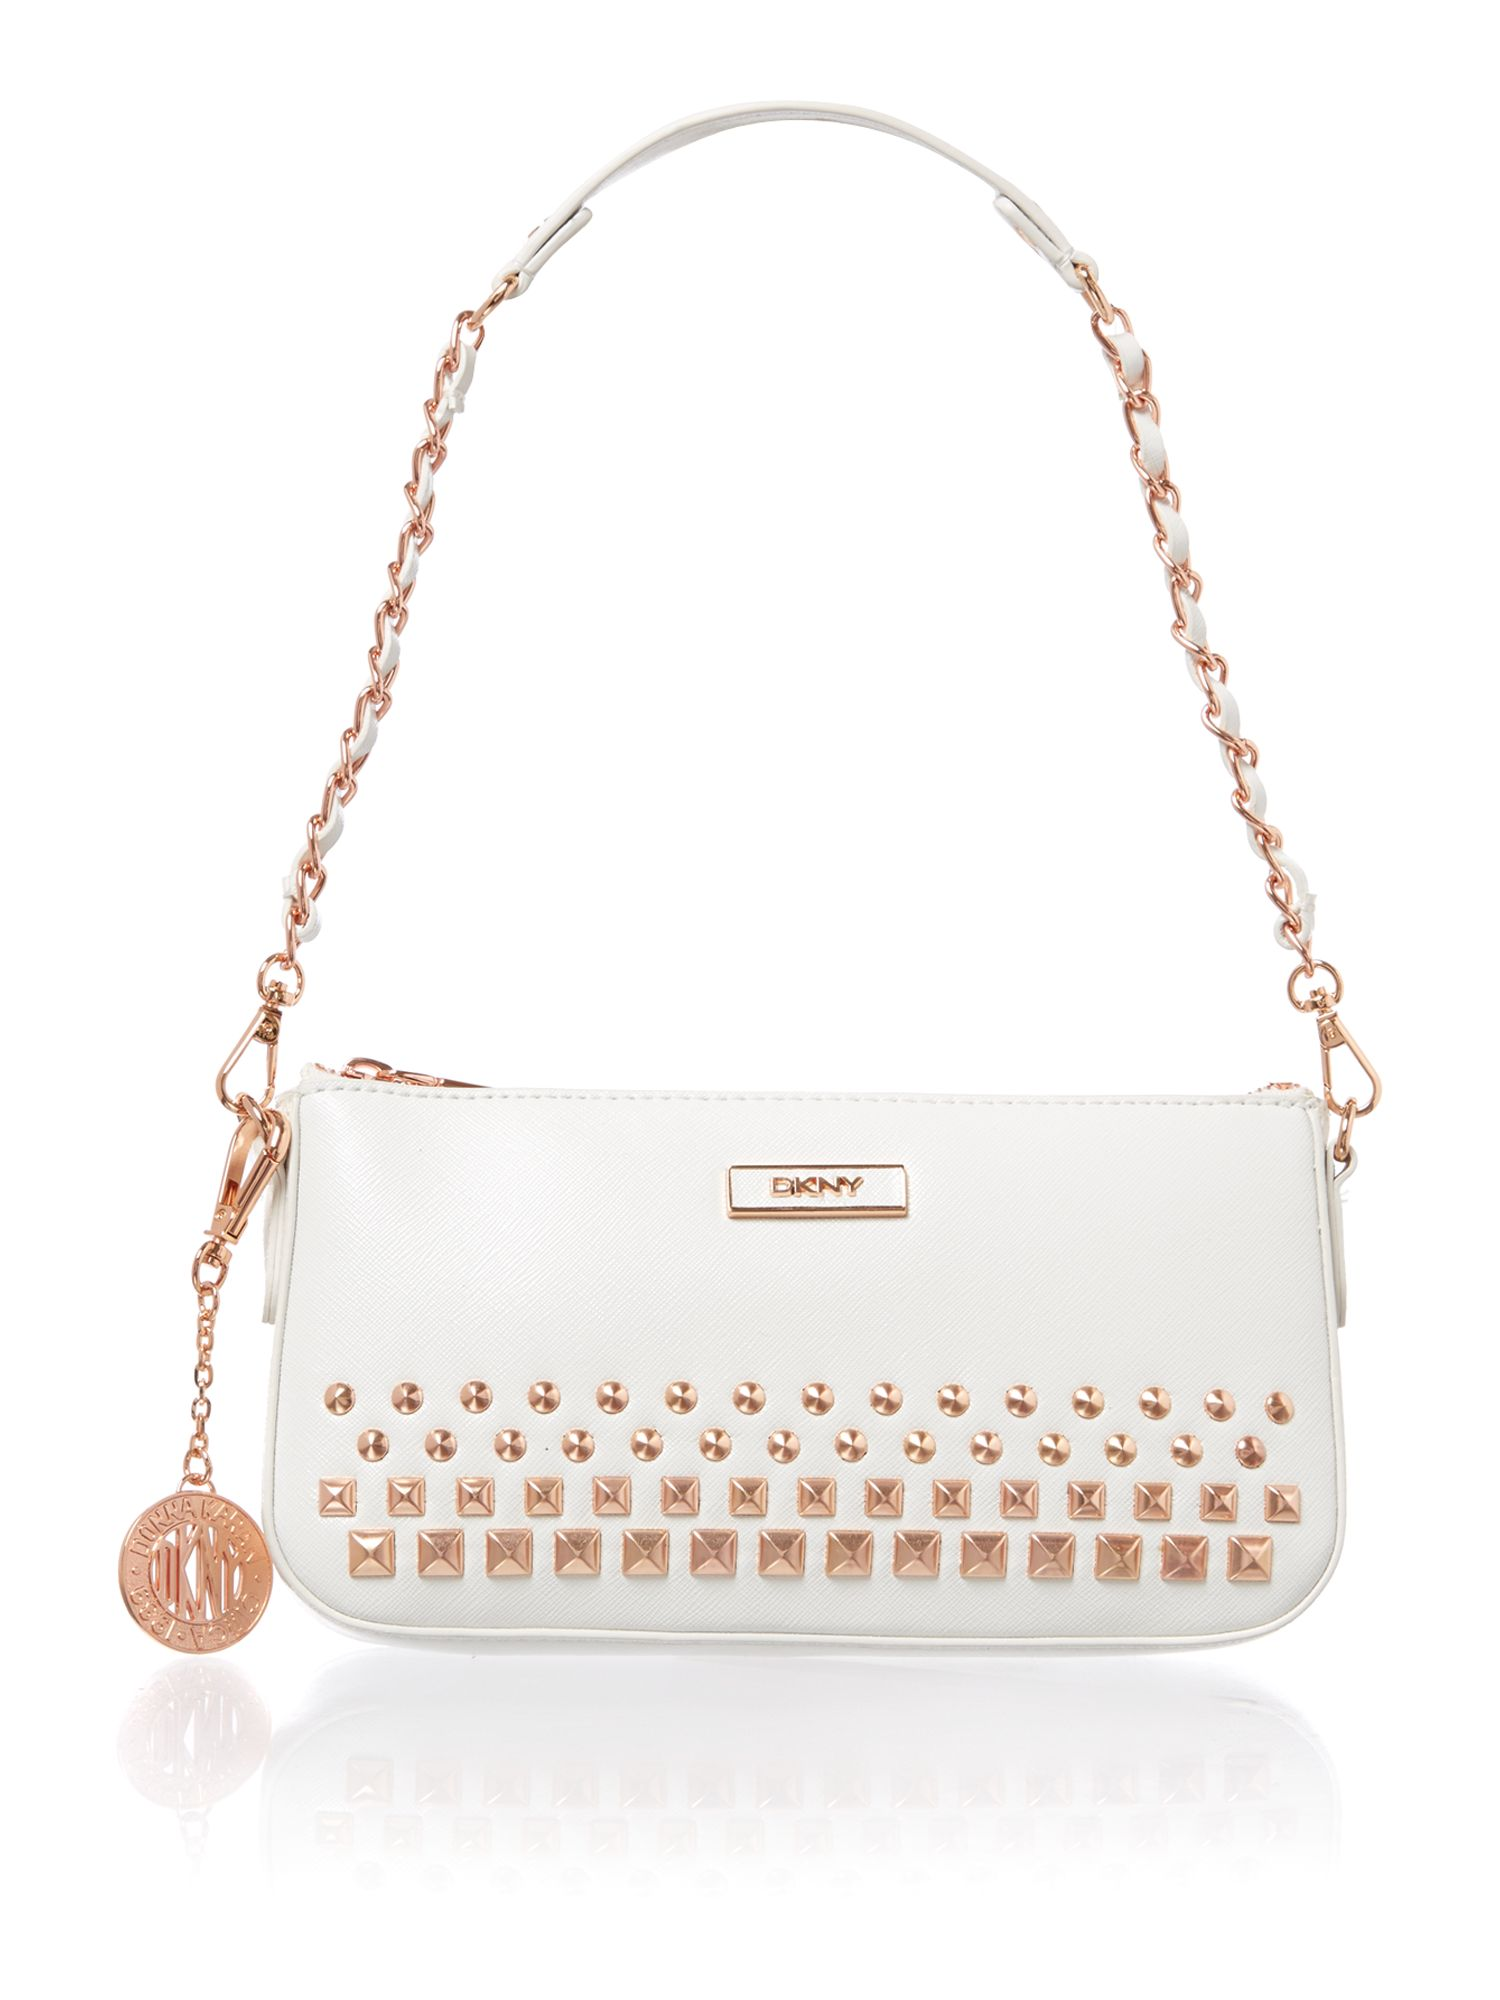 Saffiano white small shoulder bag